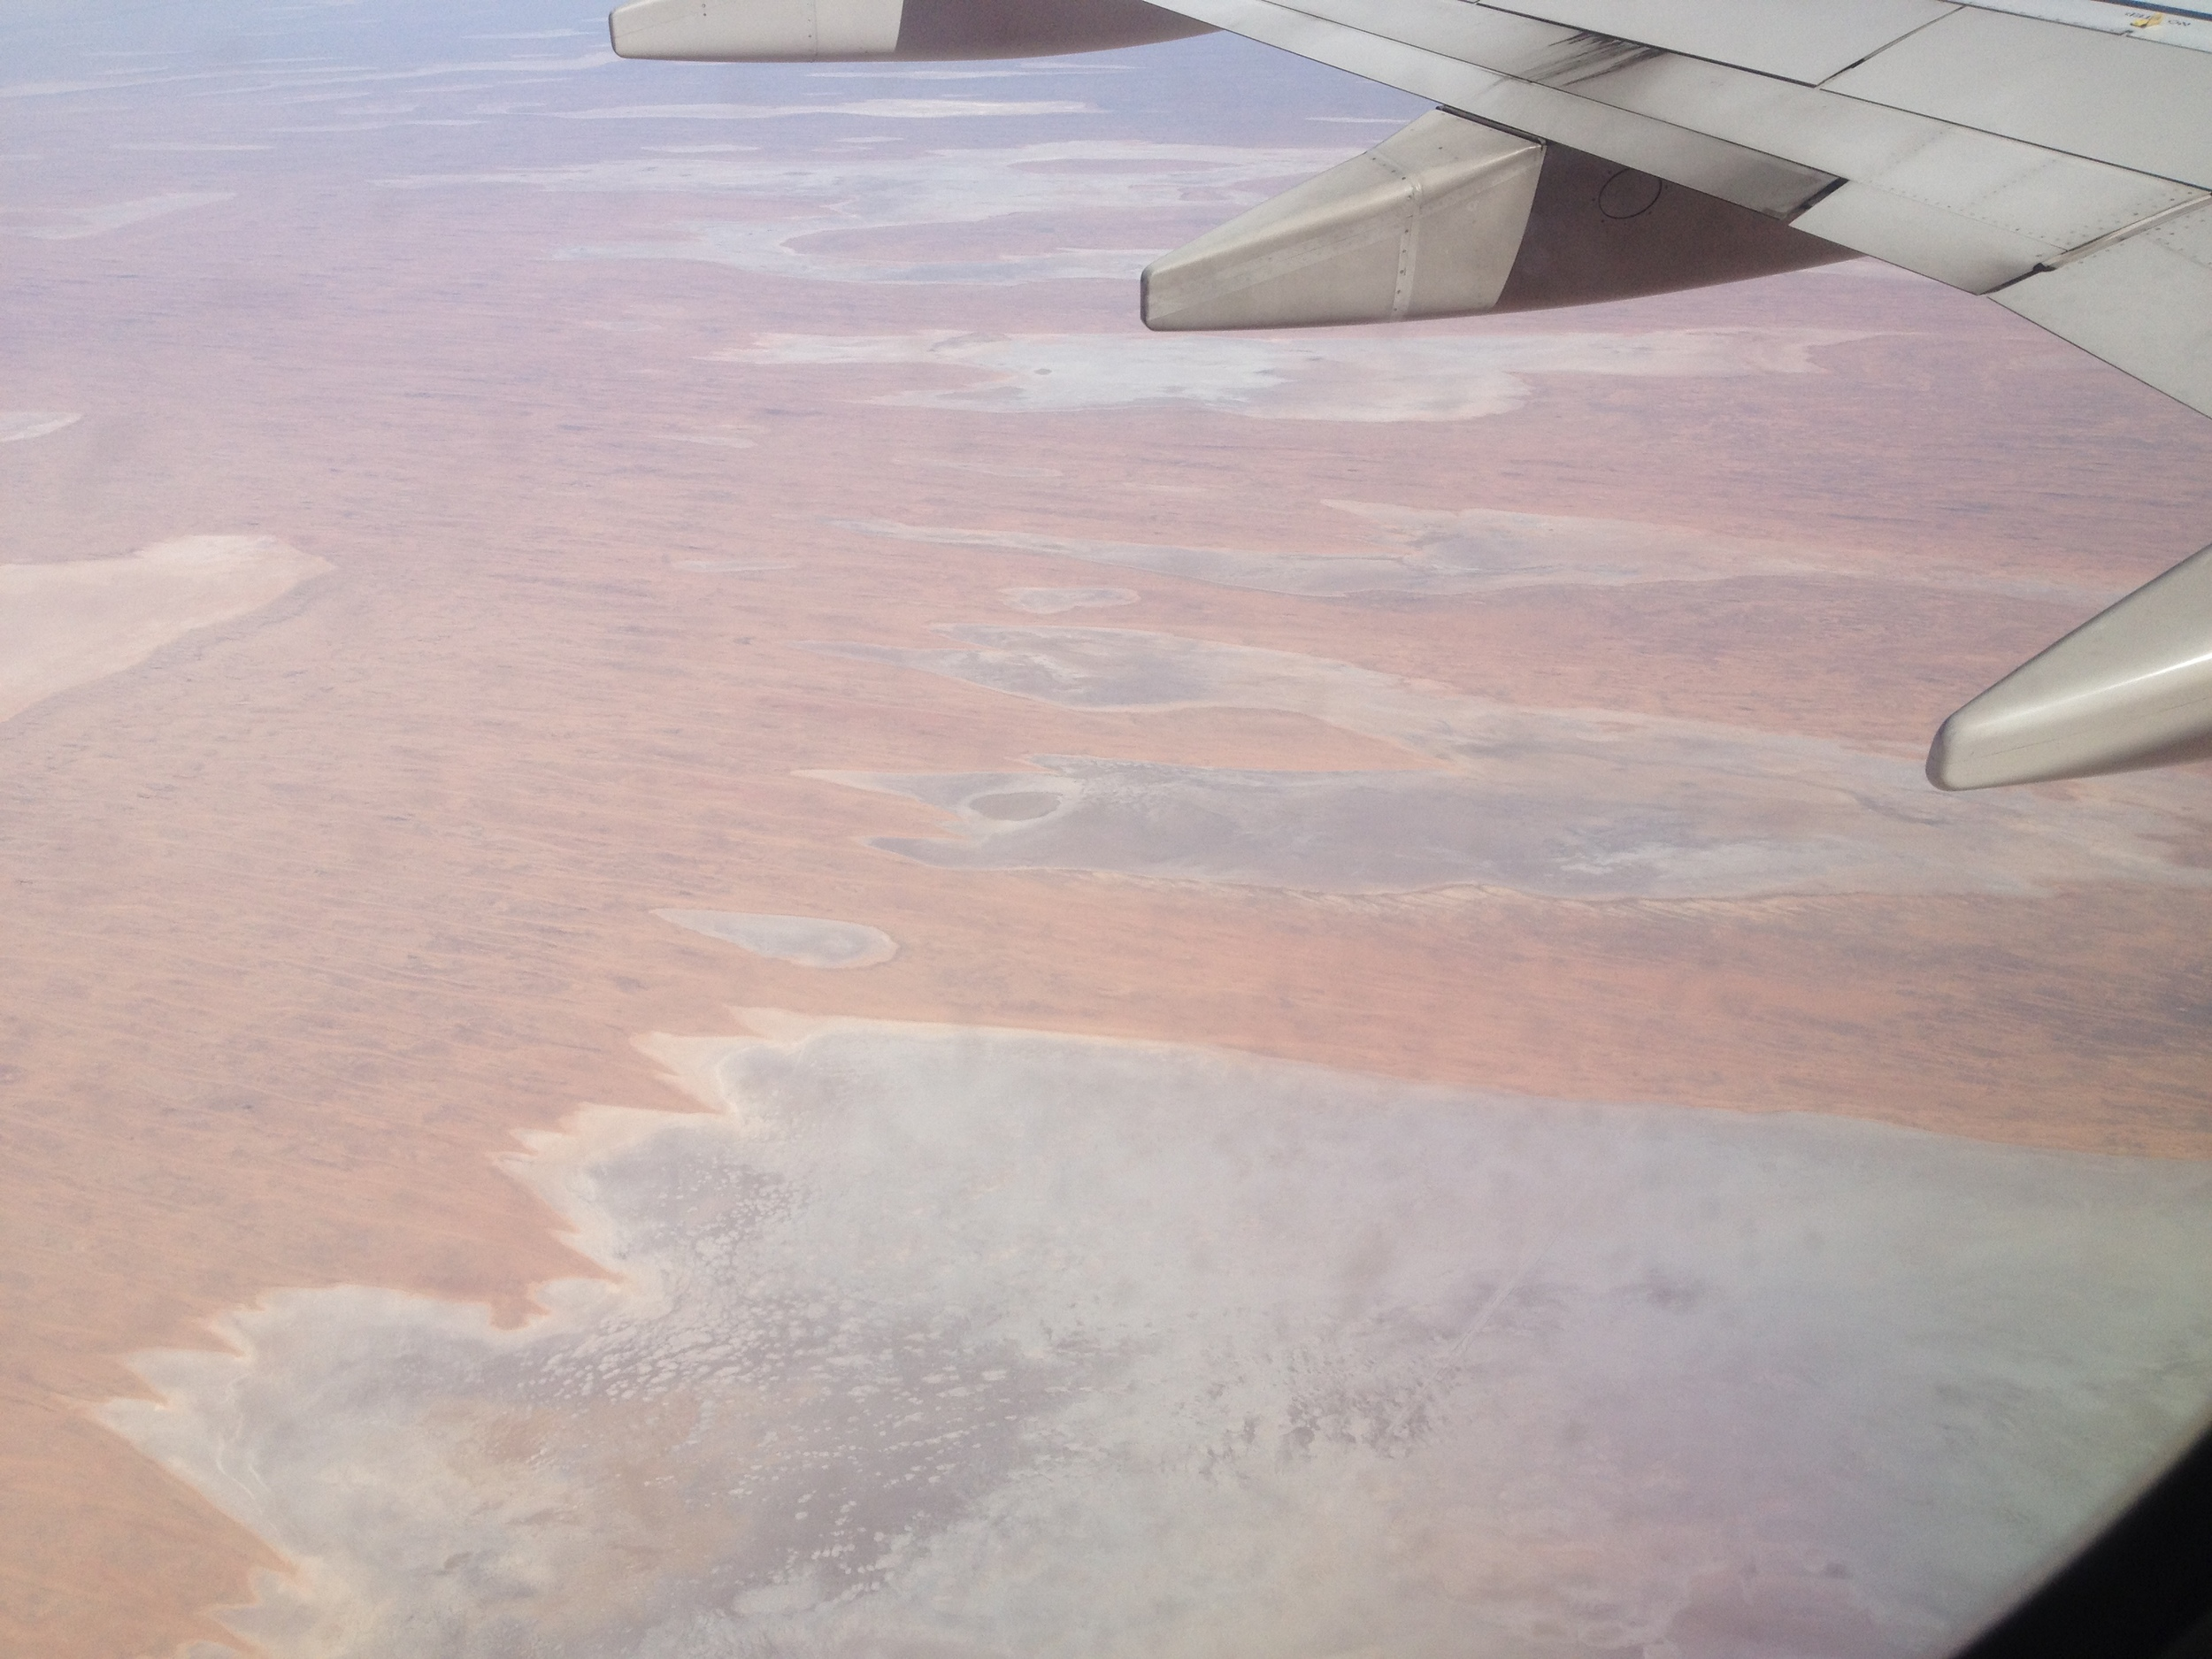 Design Research Trip, Central Australia 2014